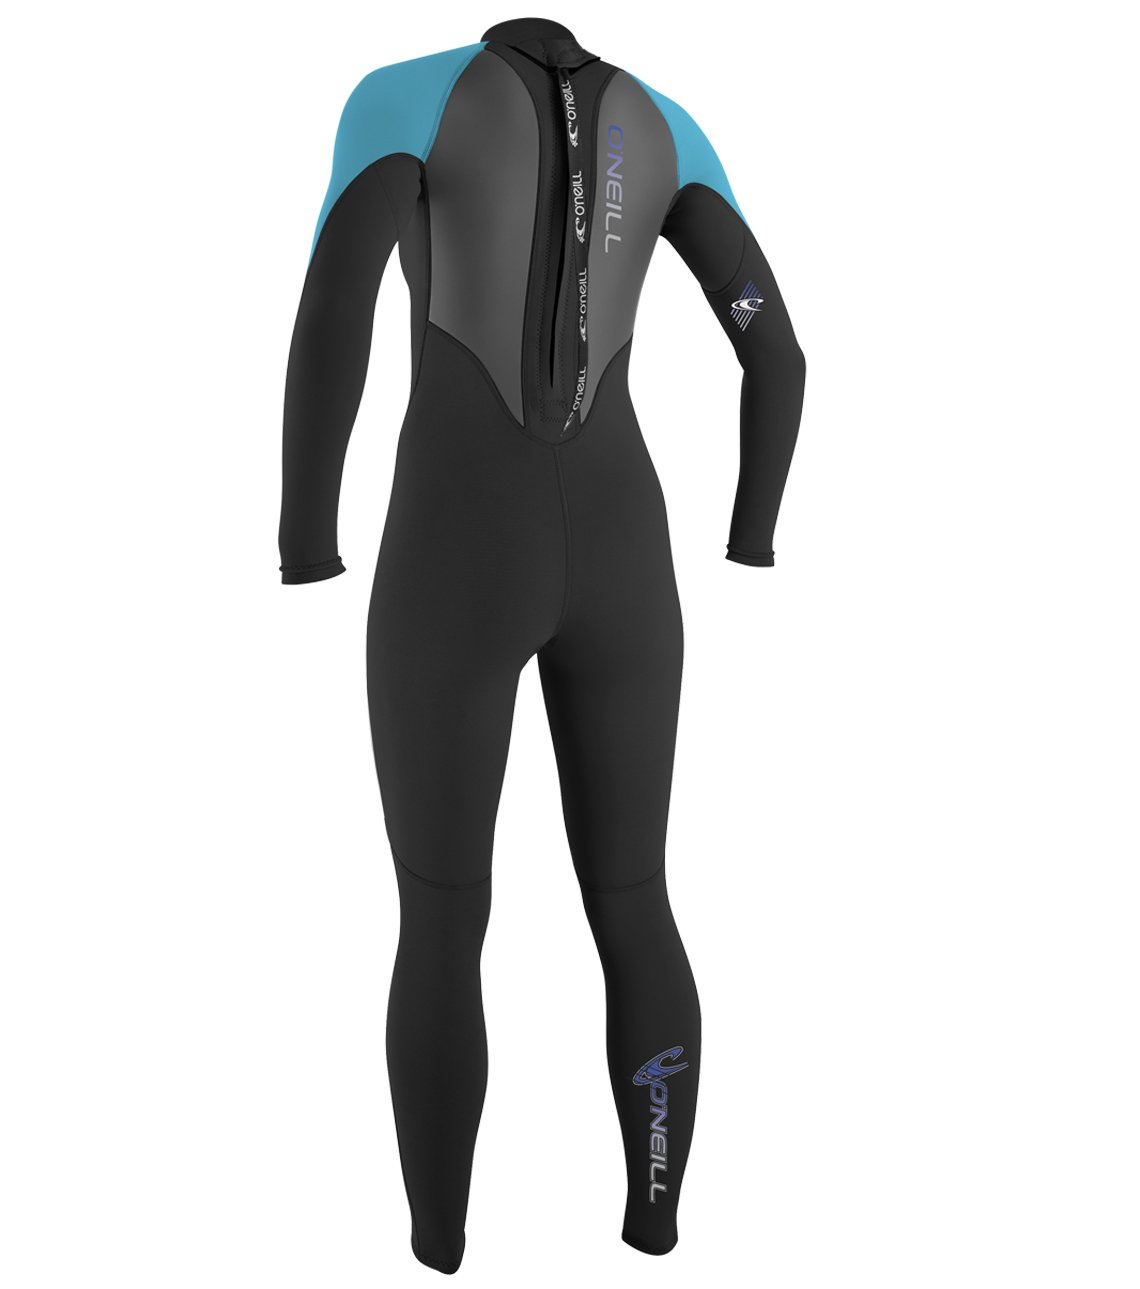 O'Neill  Women's Reactor 3/2mm Back Zip Full Wetsuit, Black/Turquoise/Black,4 by O'Neill Wetsuits (Image #2)